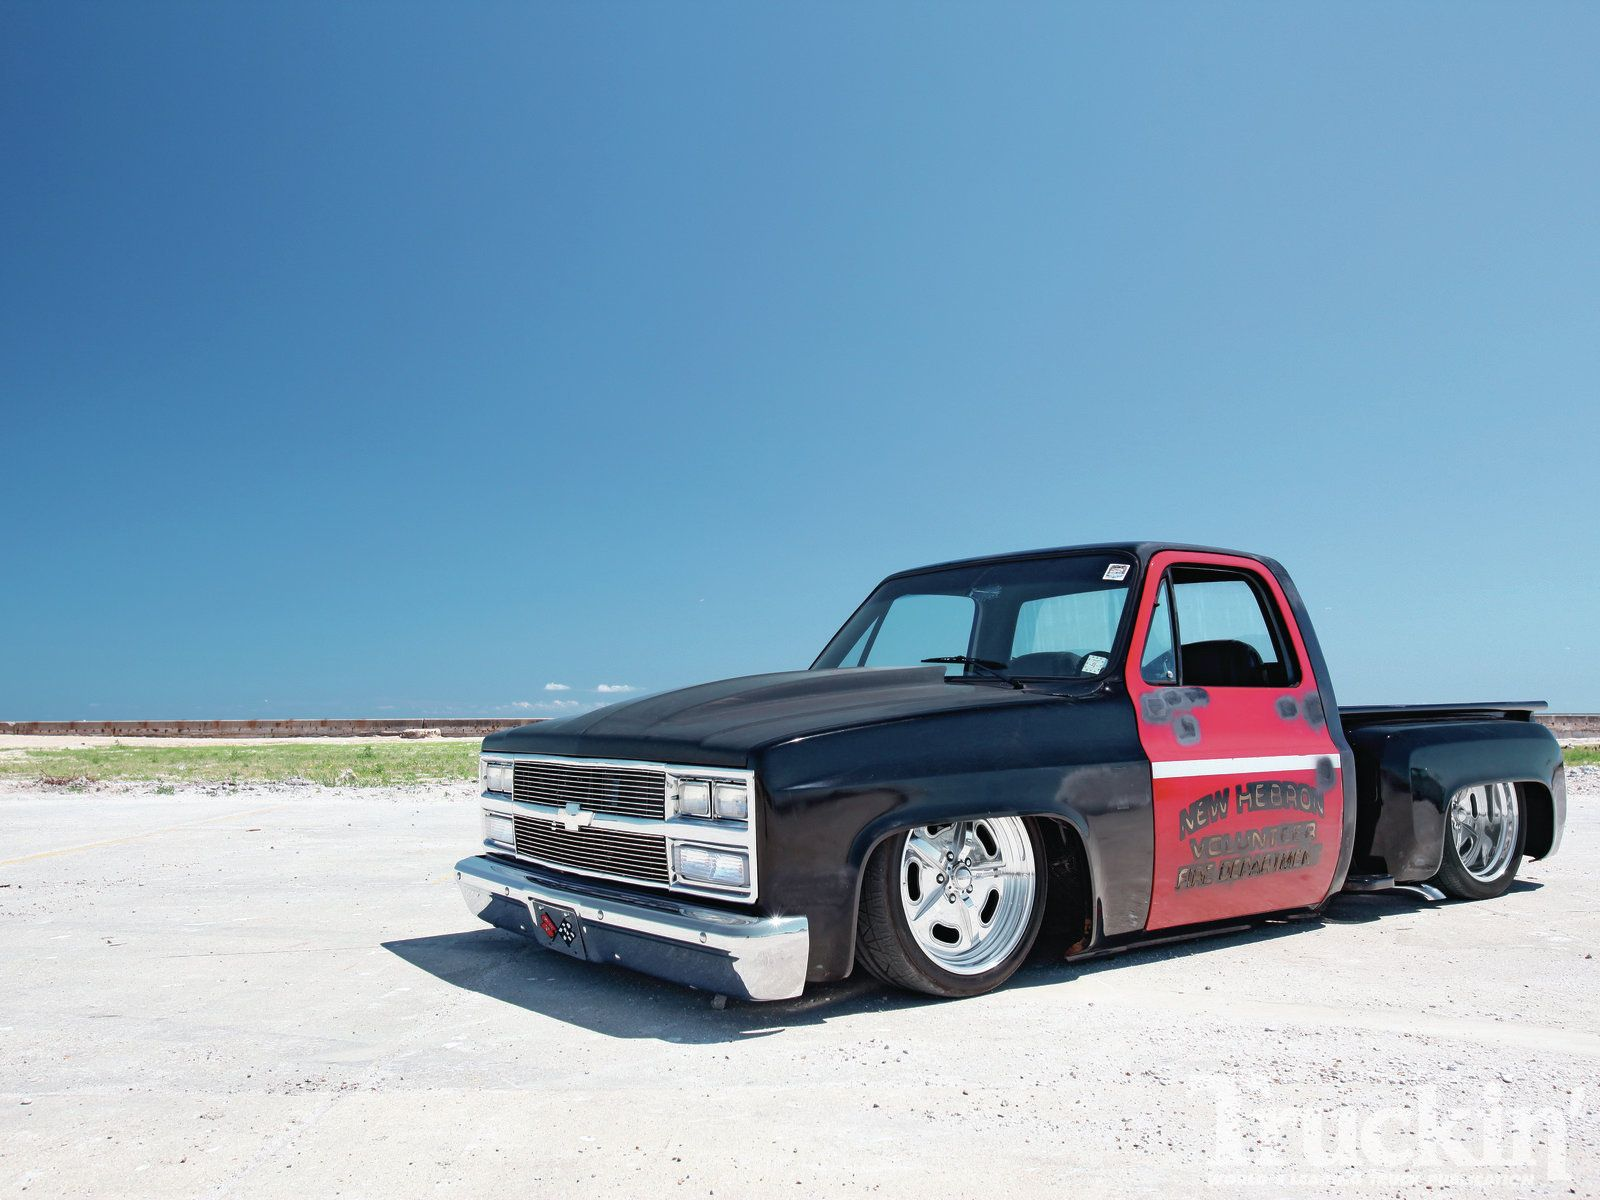 hight resolution of busted knuckles 1981 chevy c10 stepside front angle photo 1